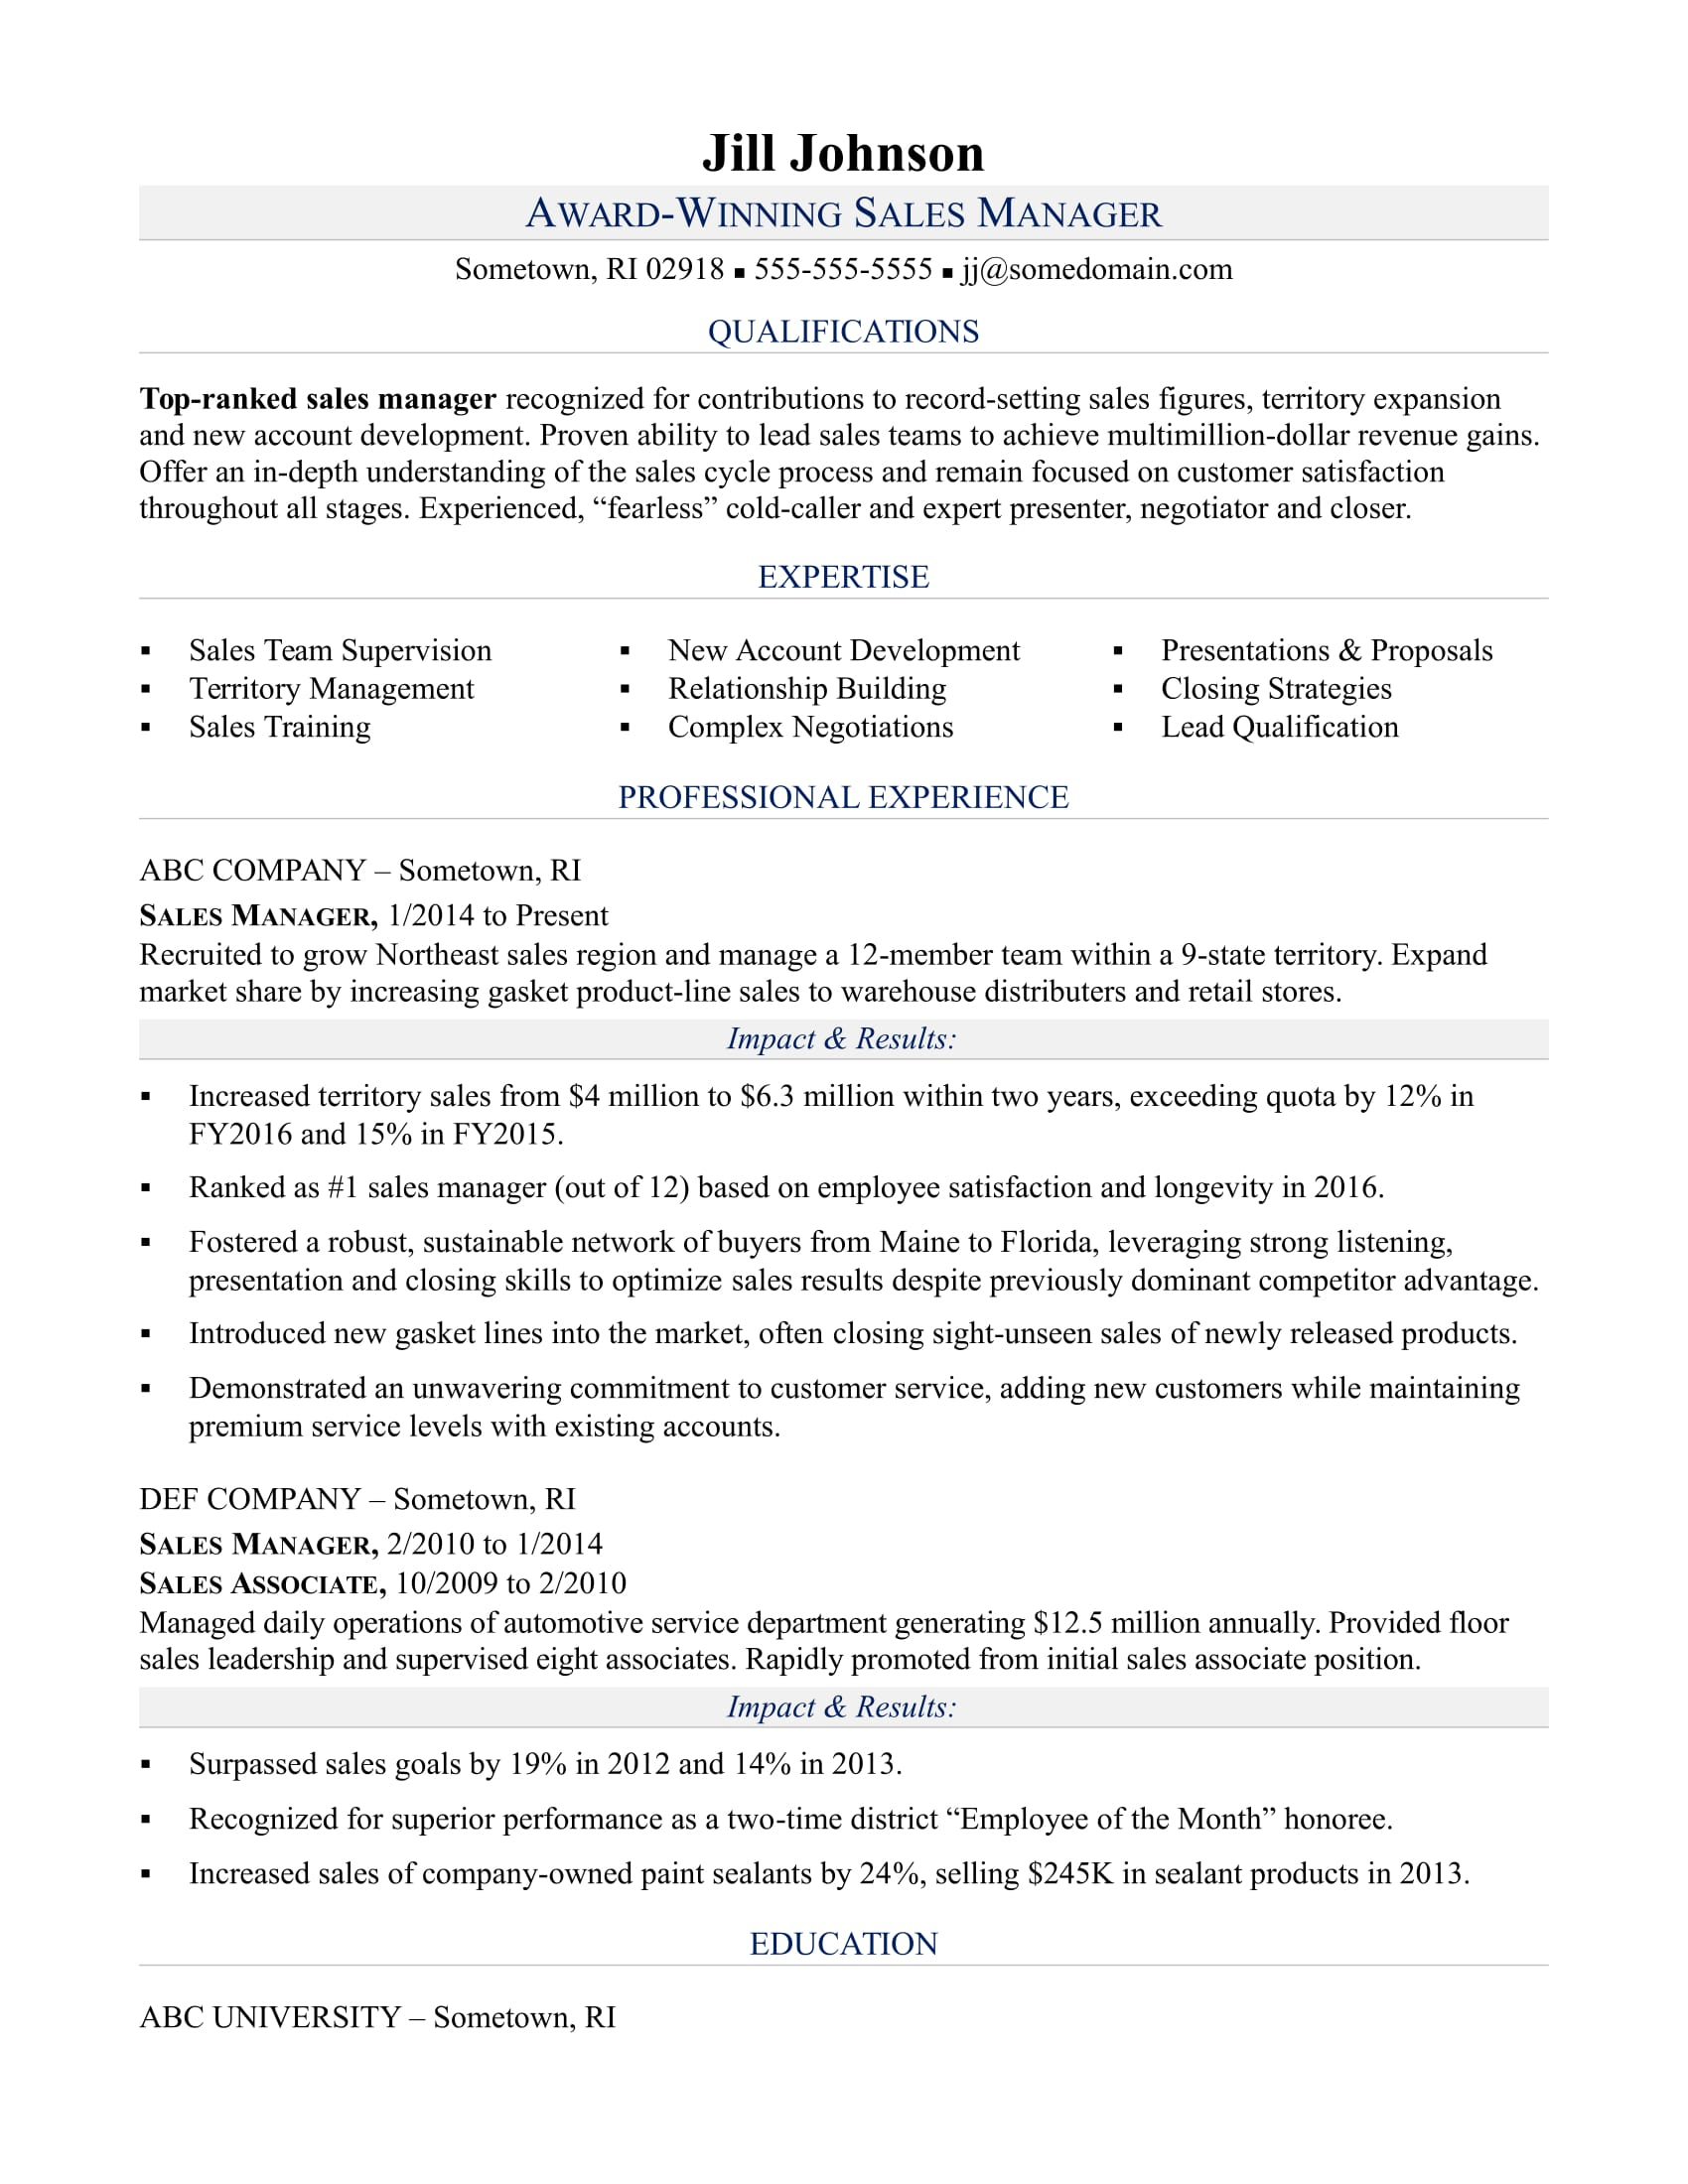 sample resume for a sales manager - Sales Manager Resume Template